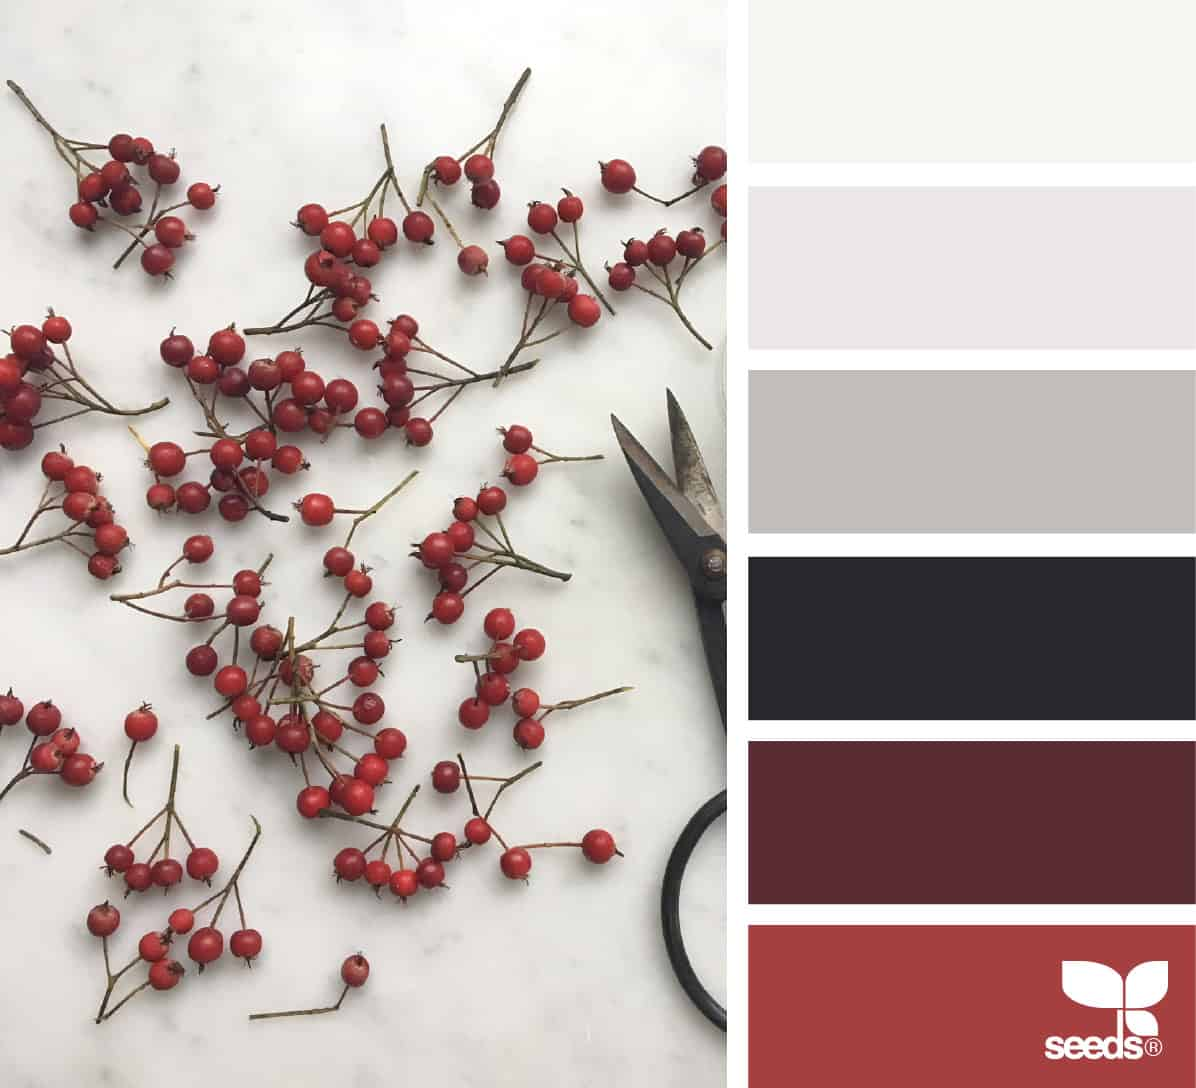 berries and clippers on white surface with color palette